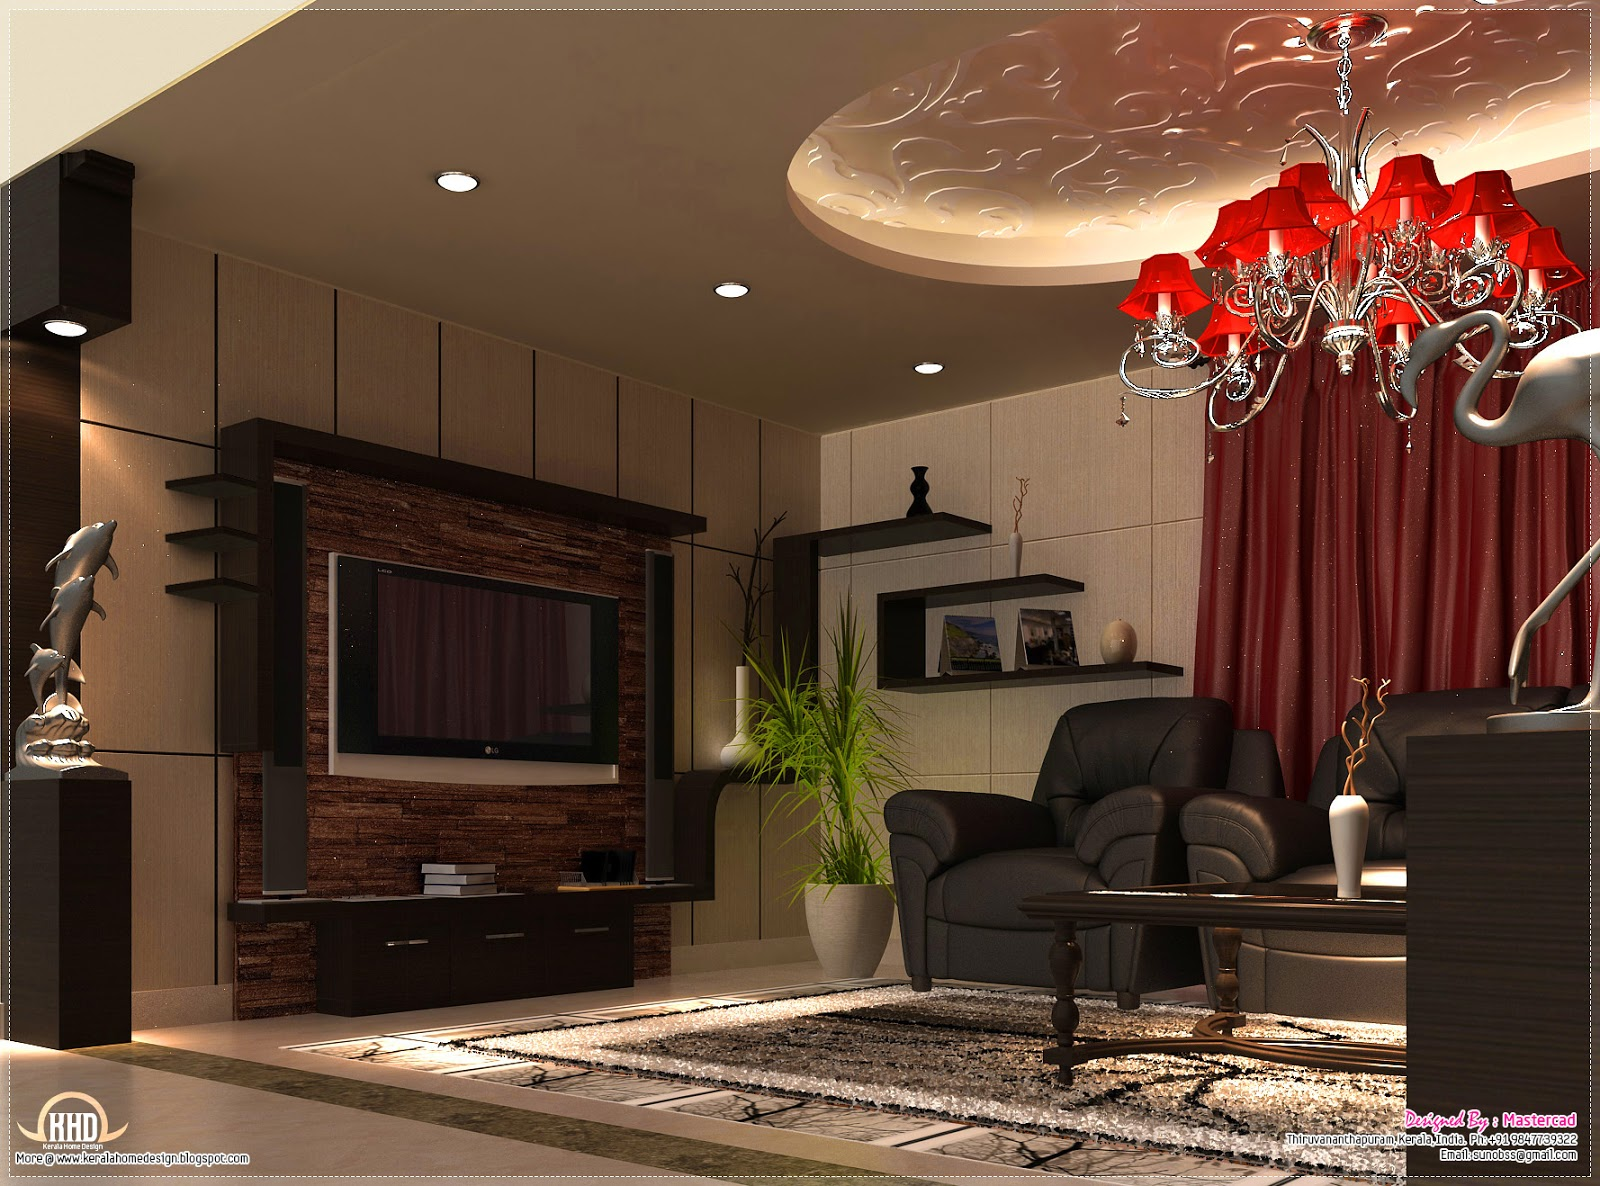 Interior design ideas kerala home design and floor plans for Interior design decorating ideas